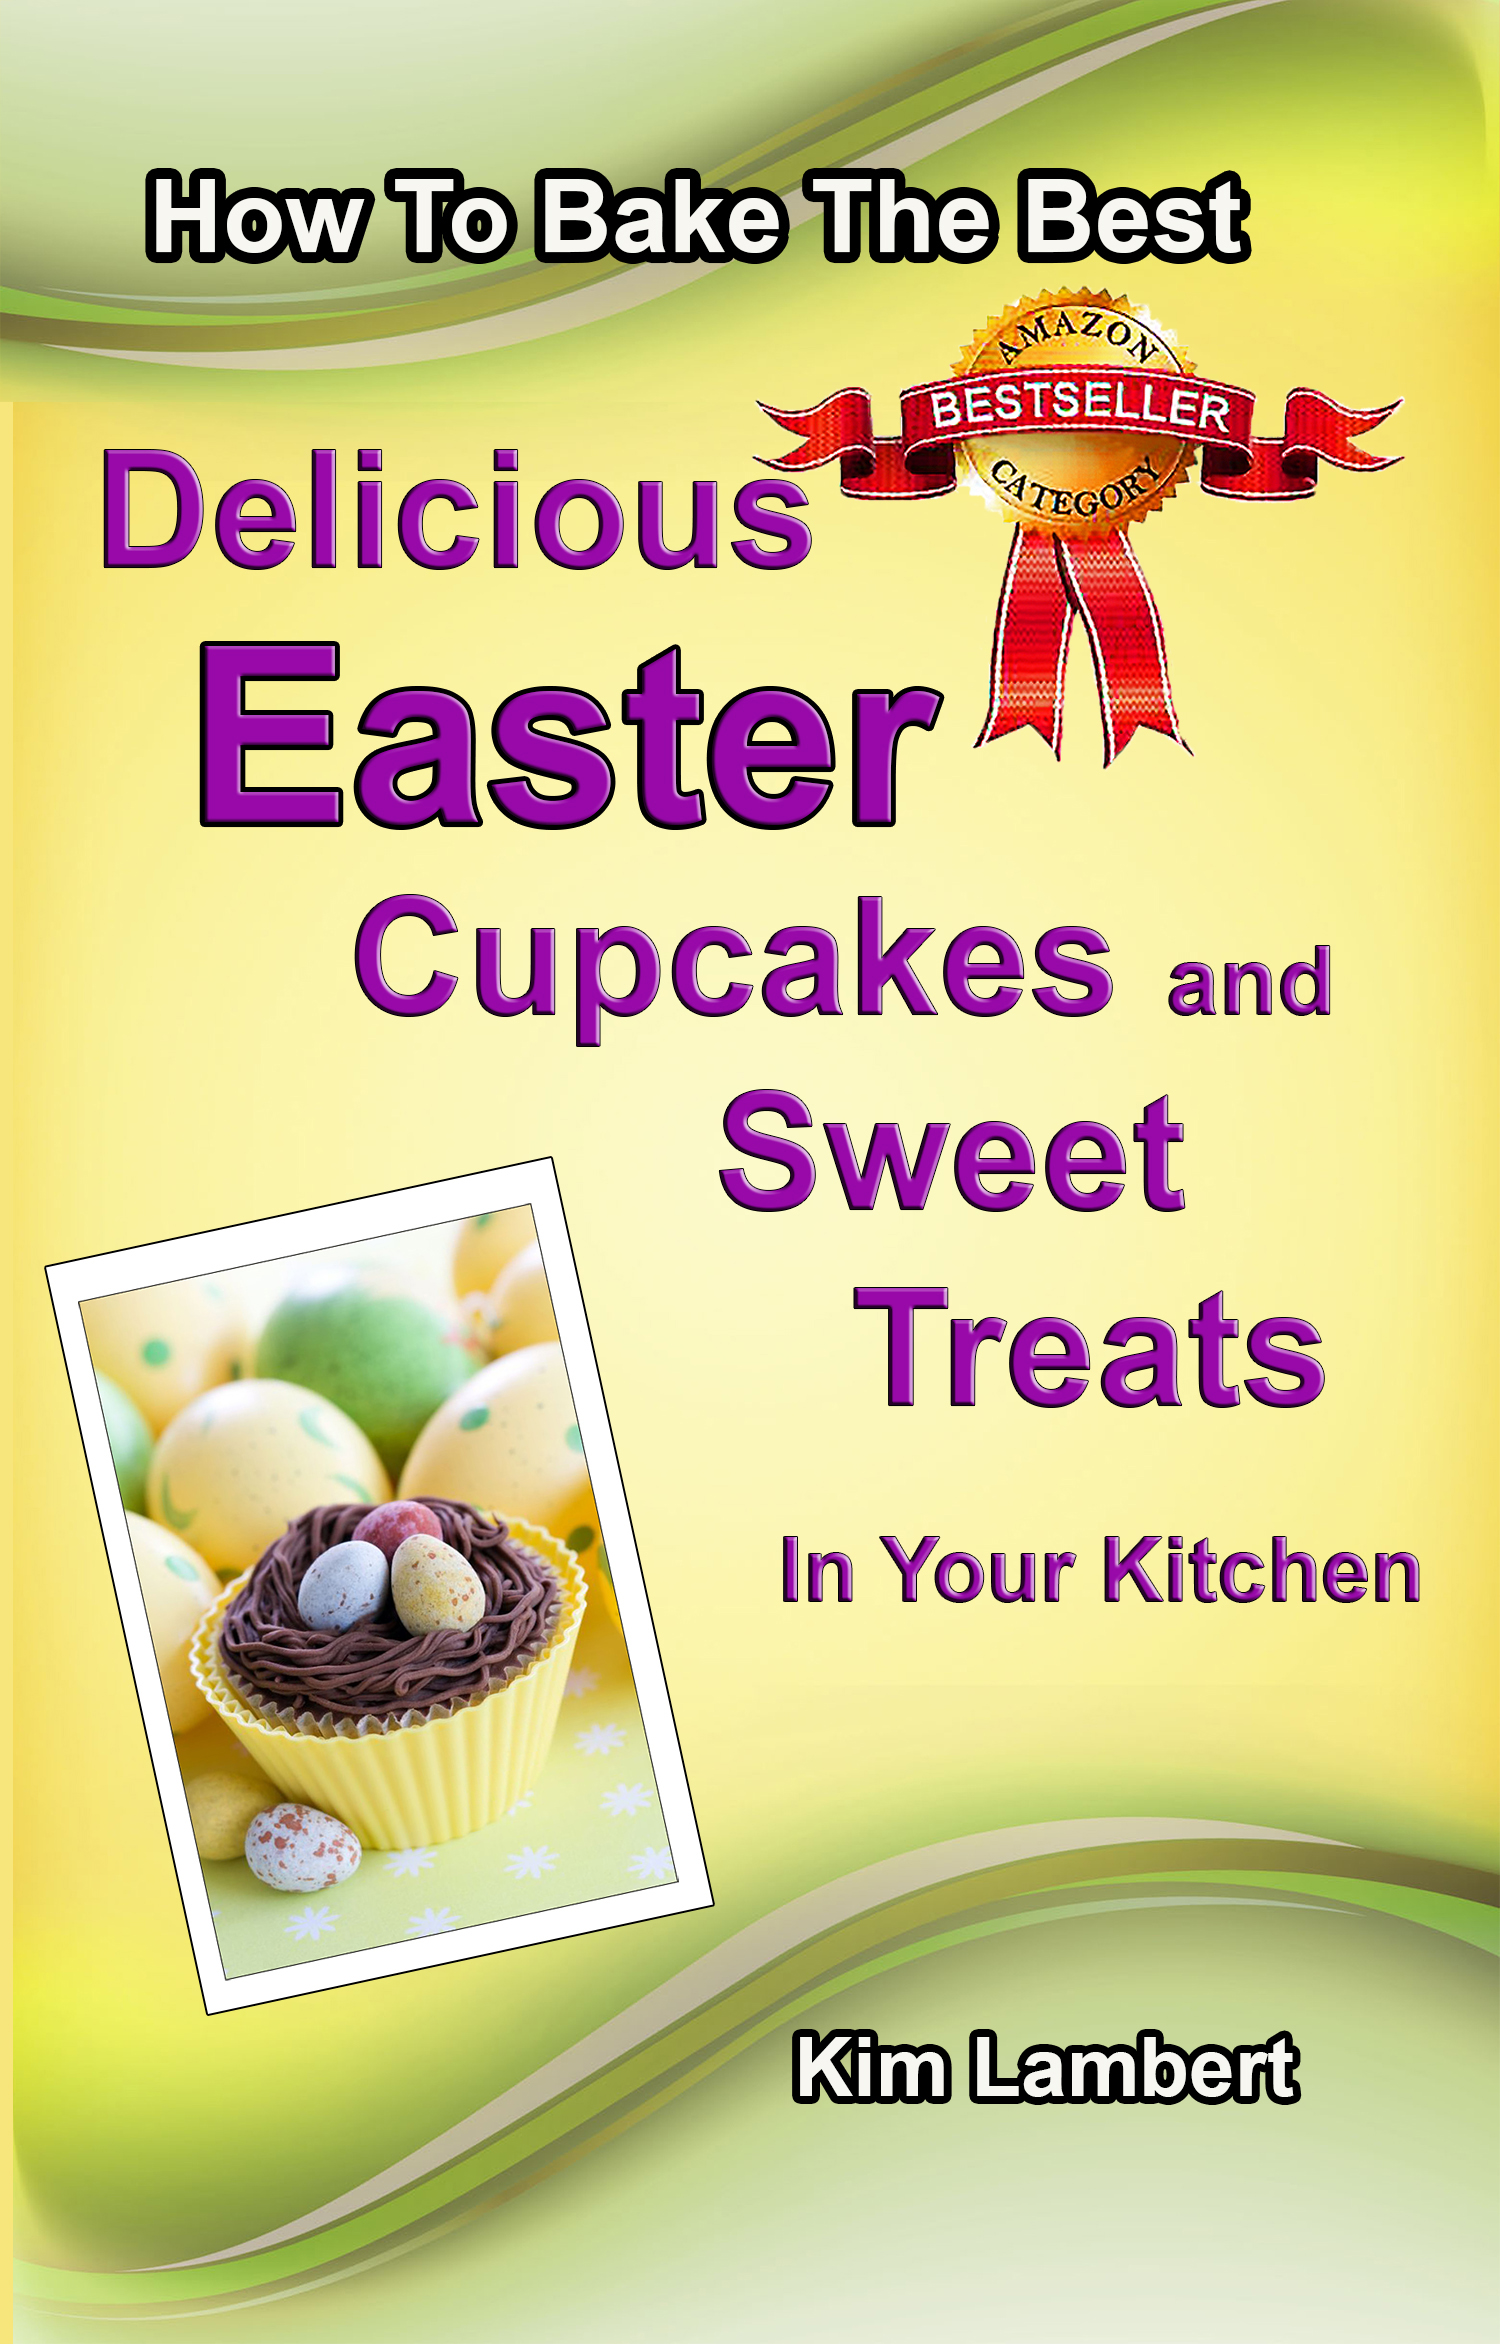 Delicious Easter Cupcakes and Sweet Treats